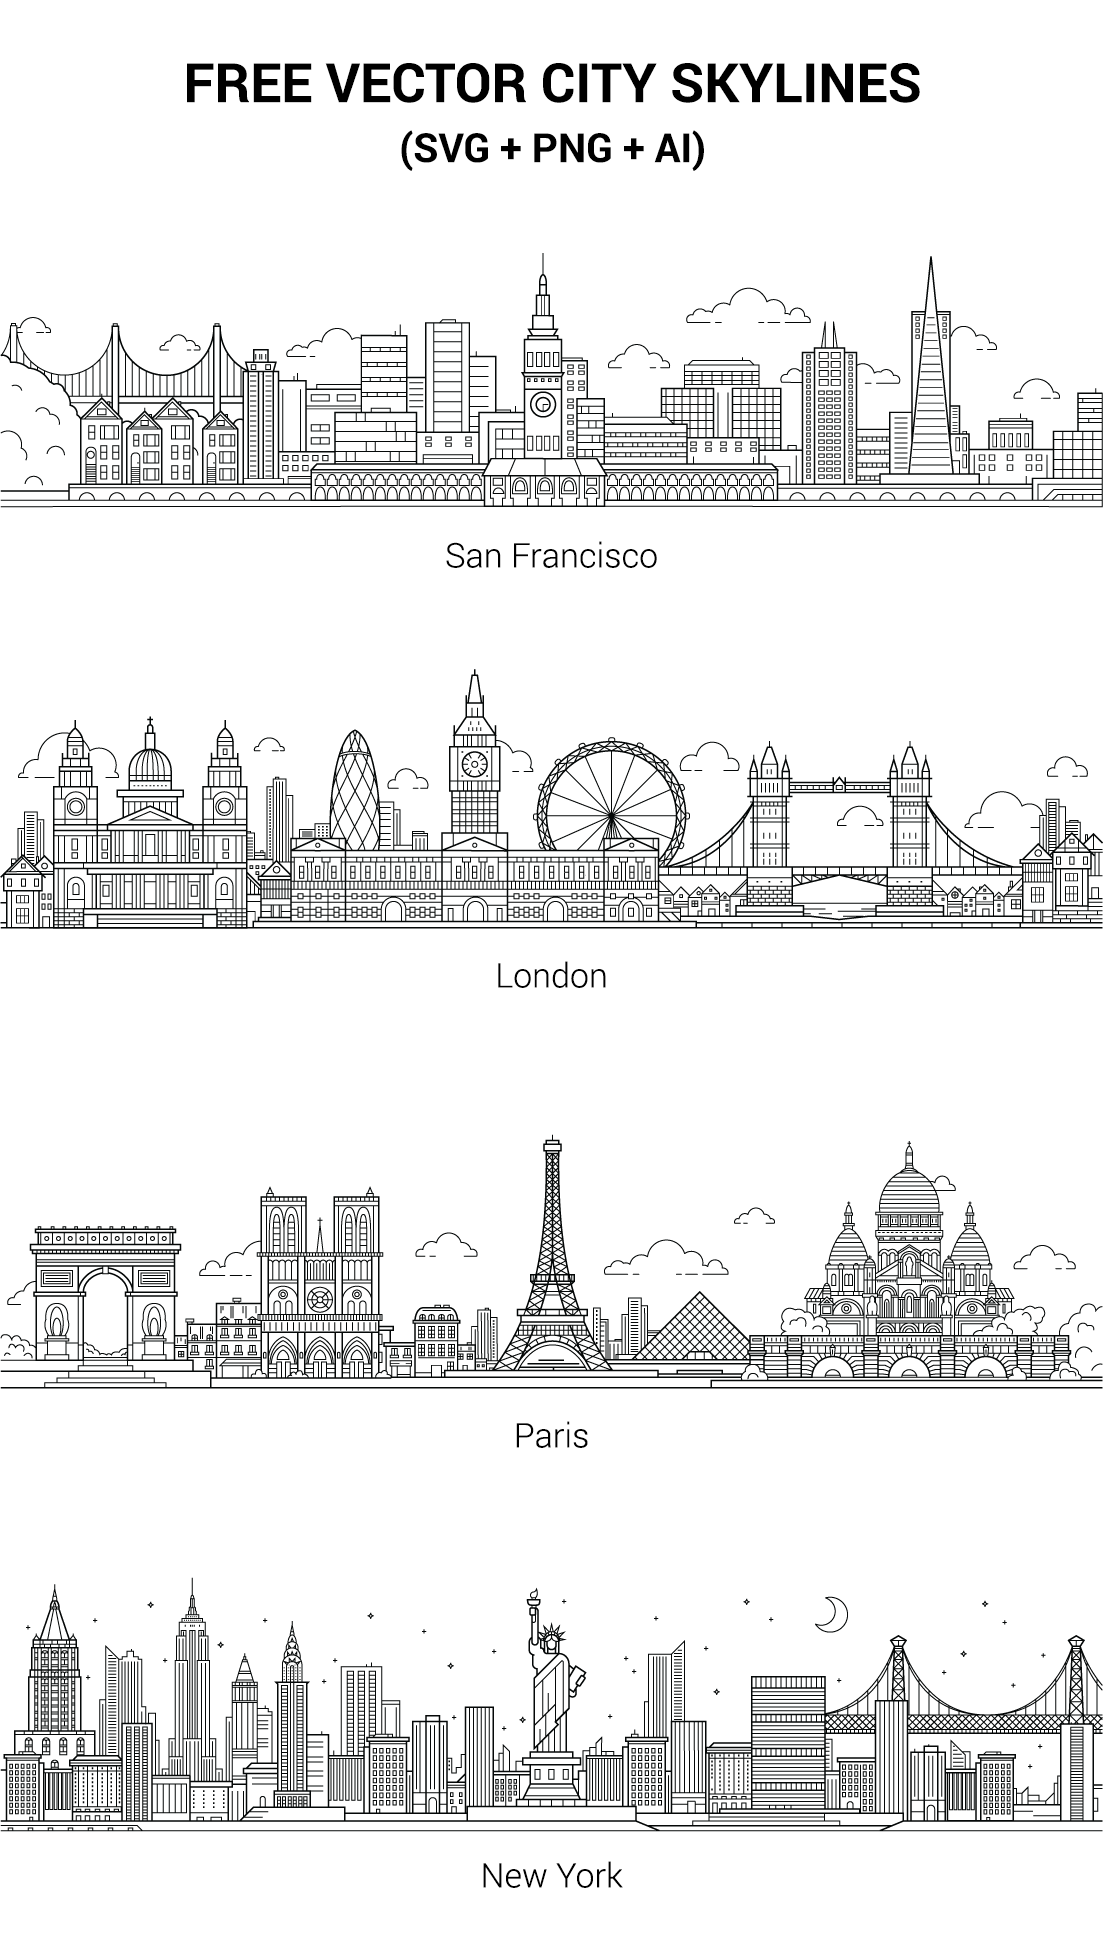 The Vectors Are Free To Use For Any Commercial Or Non Commercial Projects If You Like This Set Any Feedback Will Be Skyline Drawing City Drawing City Skyline